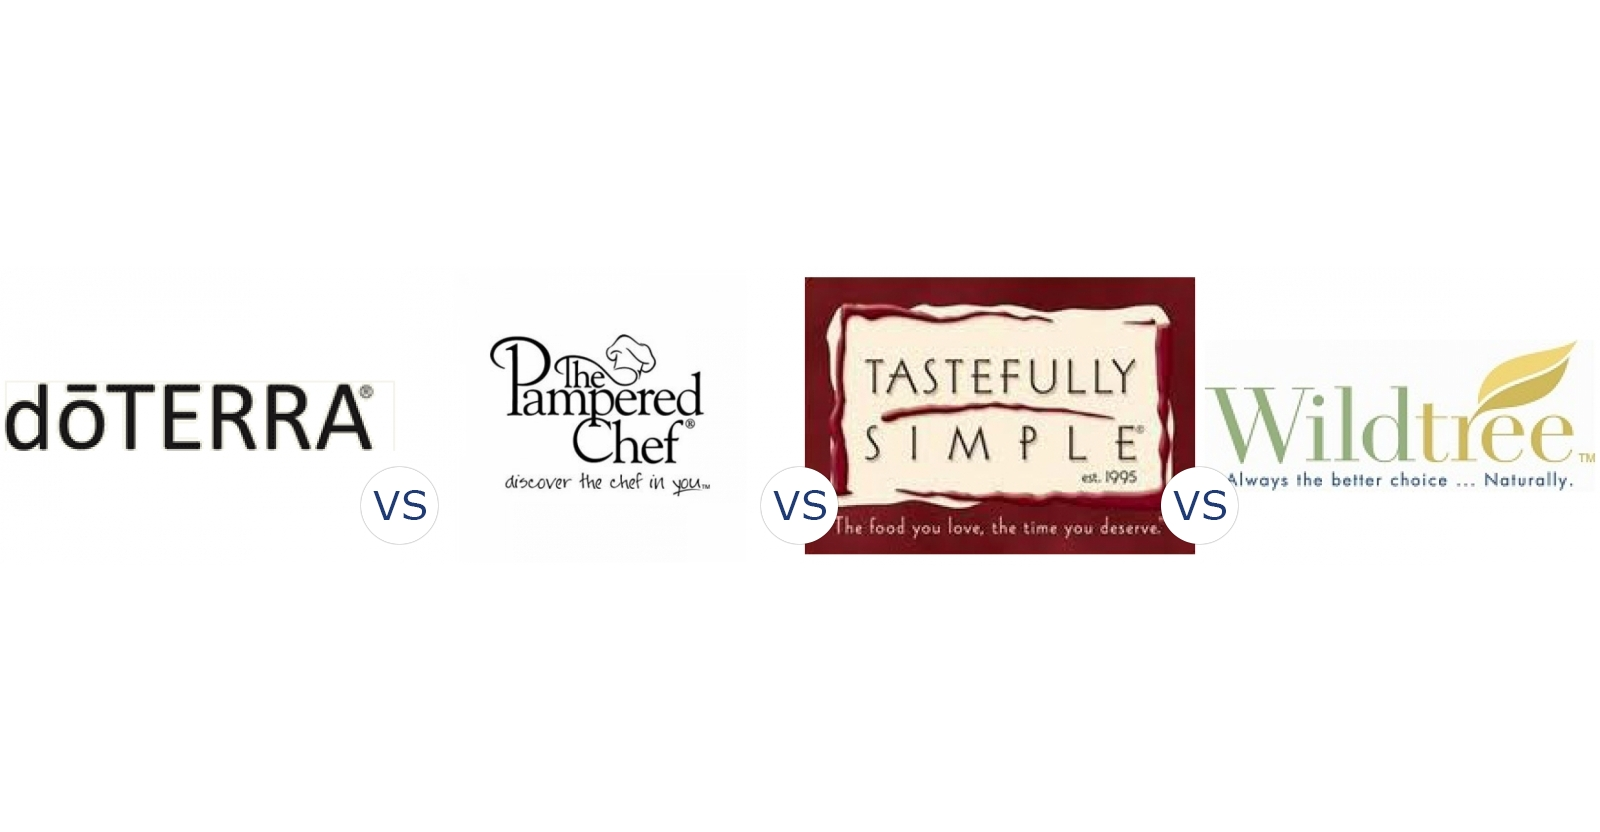 DoTerra vs. Pampered Chef vs. Tastefully Simple vs. Wildtree